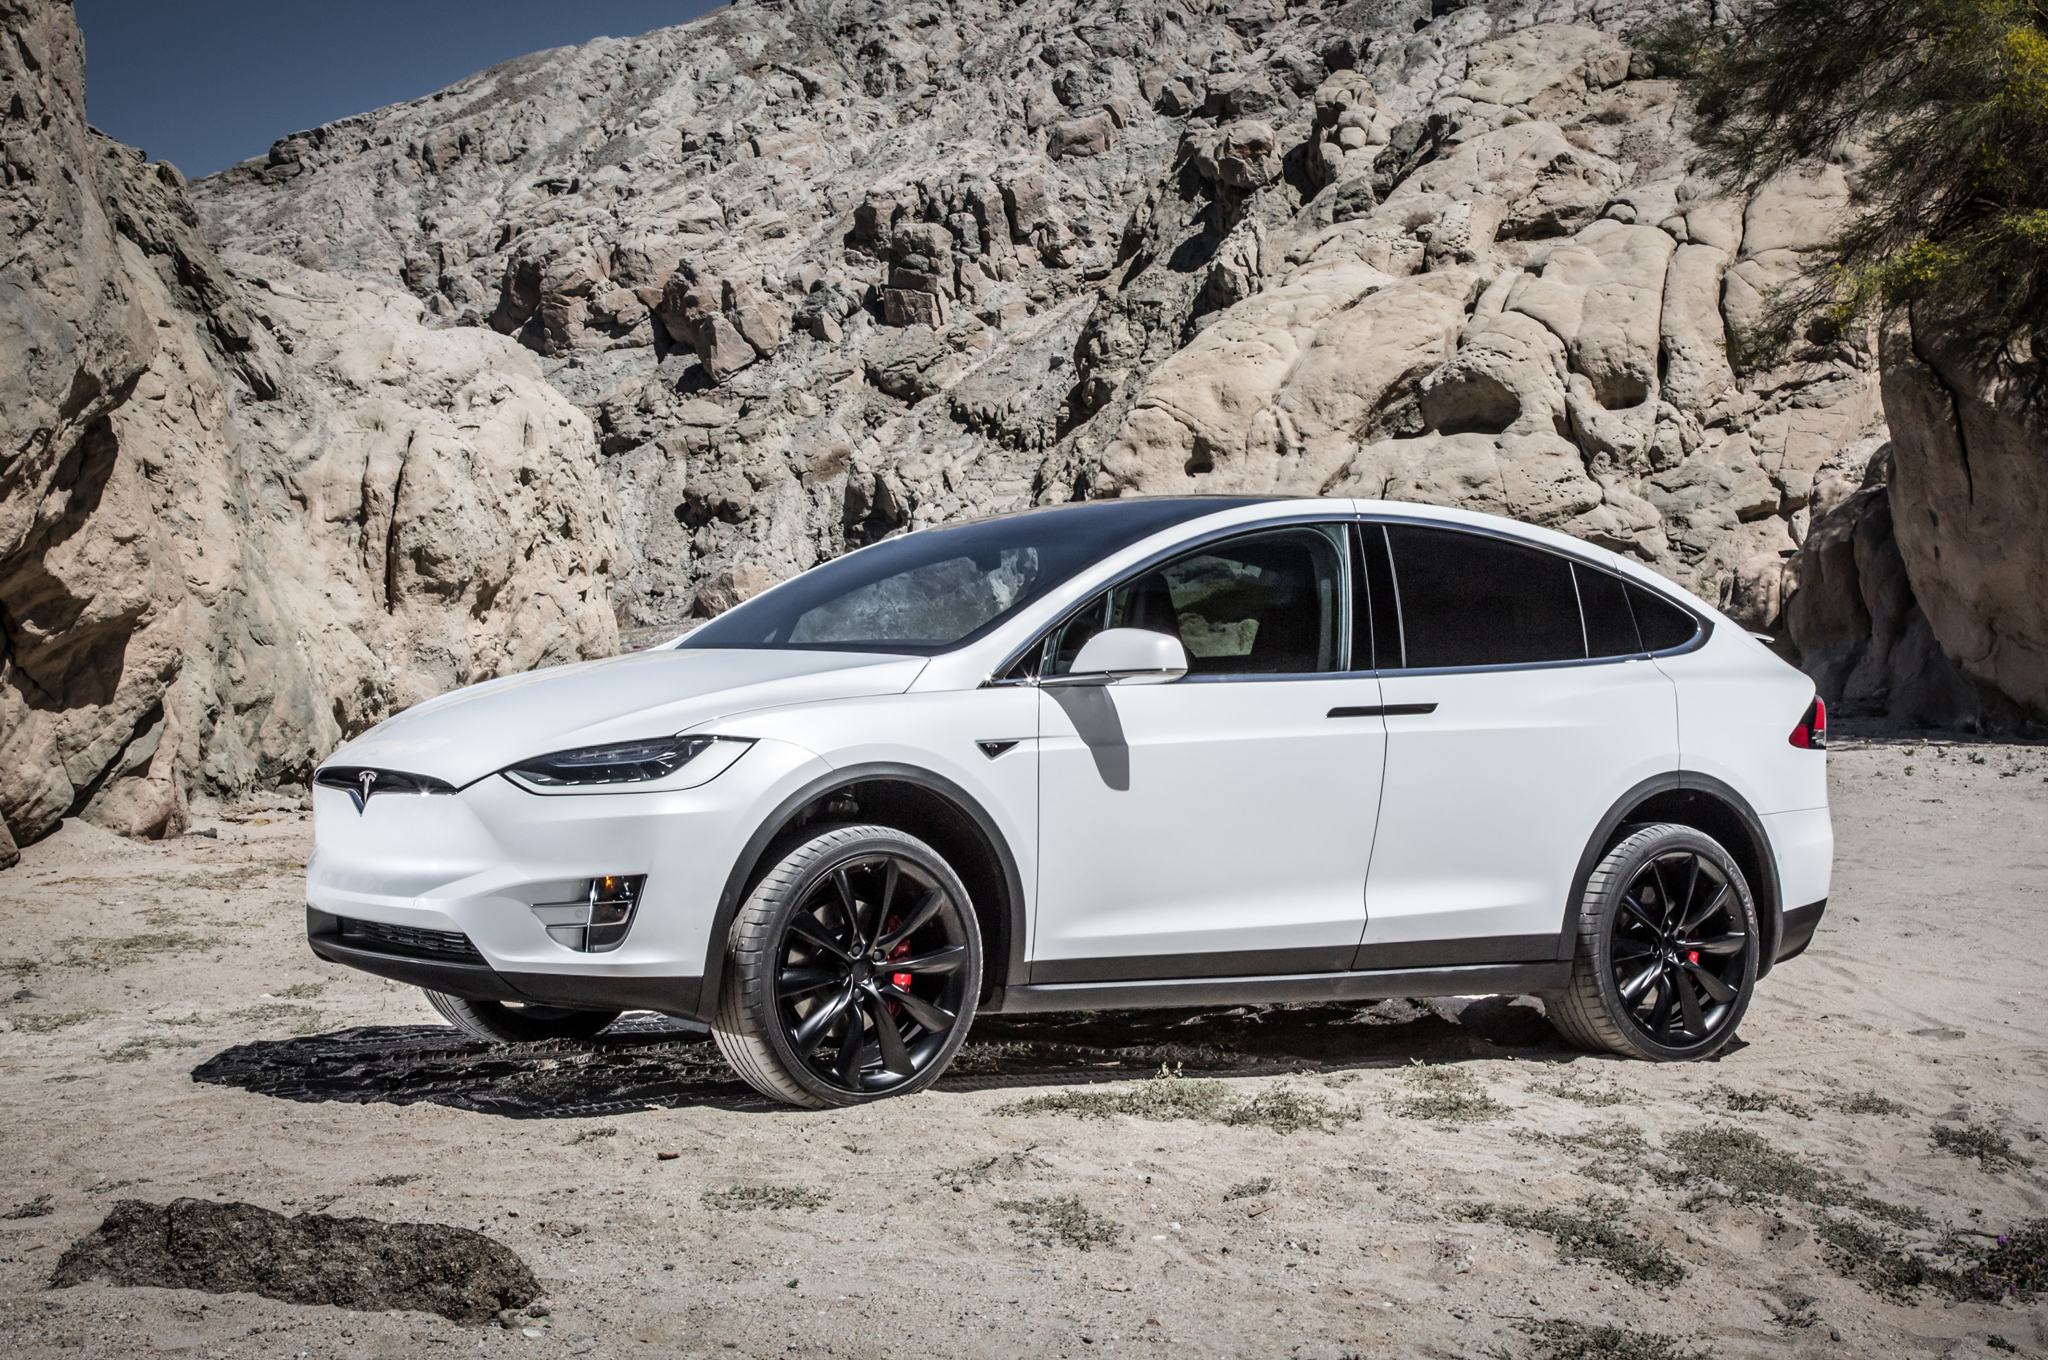 tesla model x wallpapers images photos pictures backgrounds. Black Bedroom Furniture Sets. Home Design Ideas